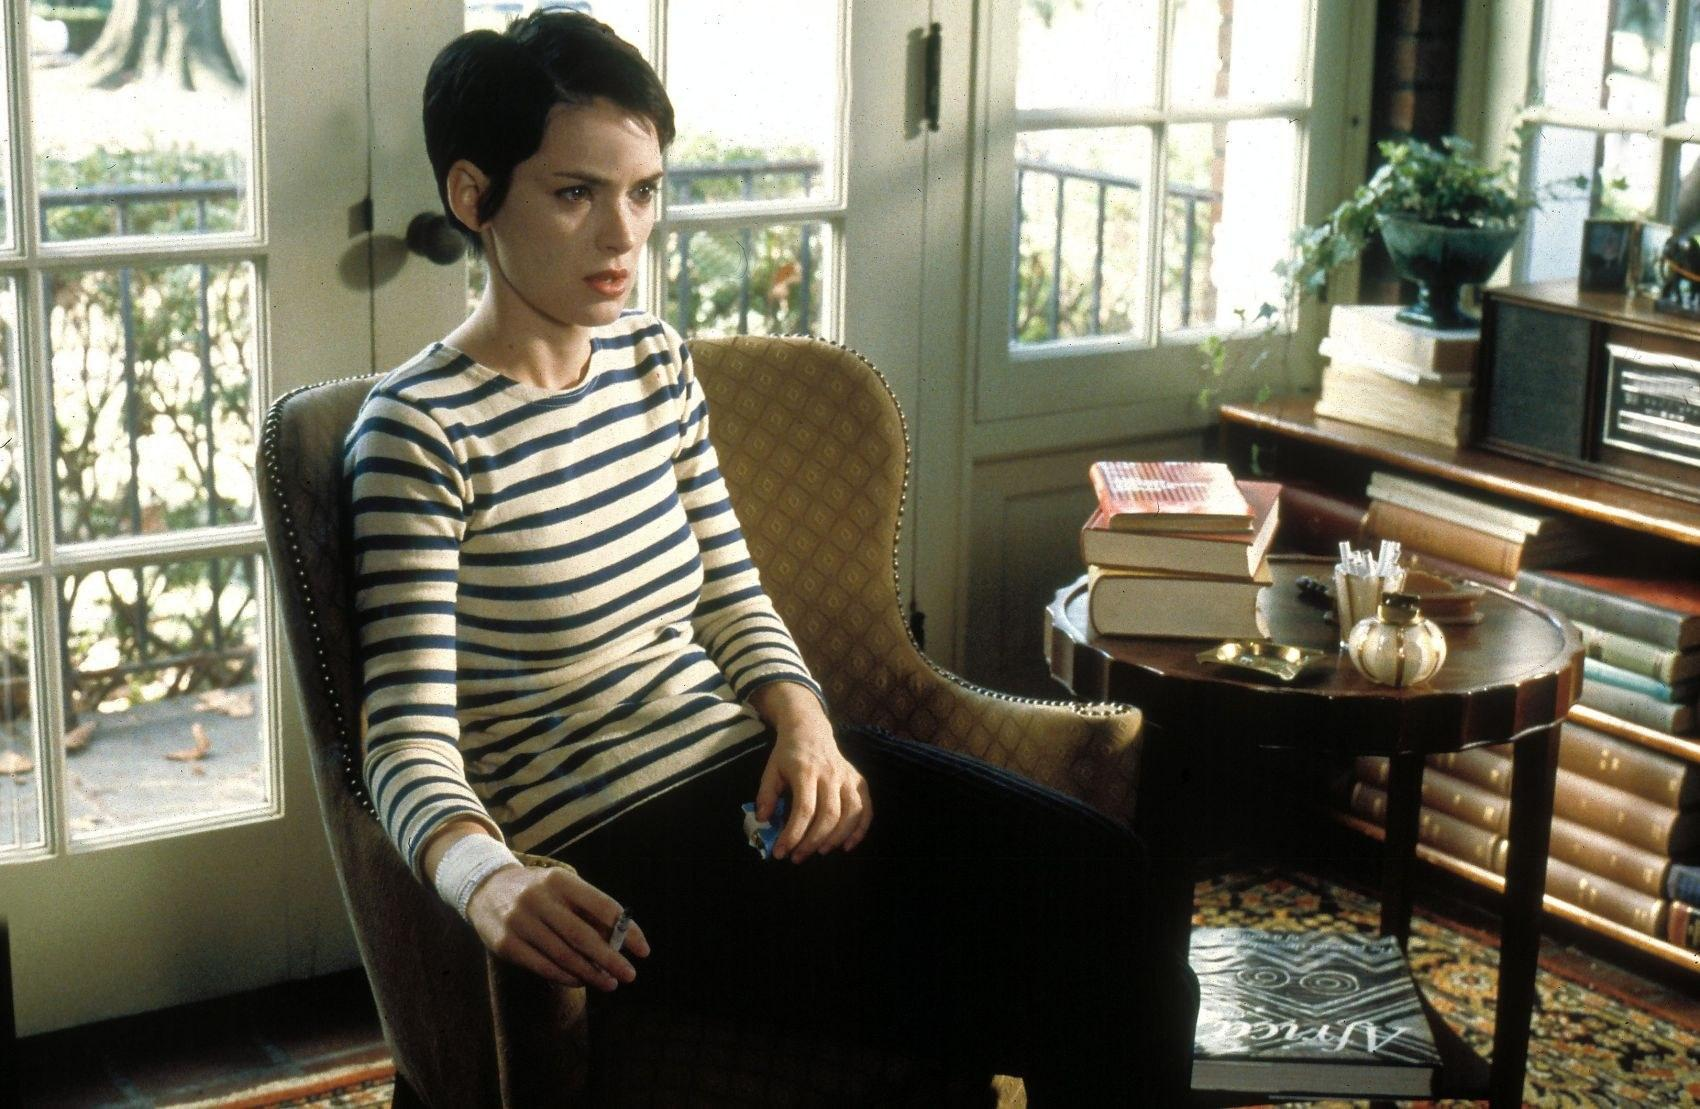 the portrayal of mental illness in girl interrupted 15 great movies that realistically portray mental illness 21 march  always been interested in mad characters and the portrayal of insanity  girl, interrupted .